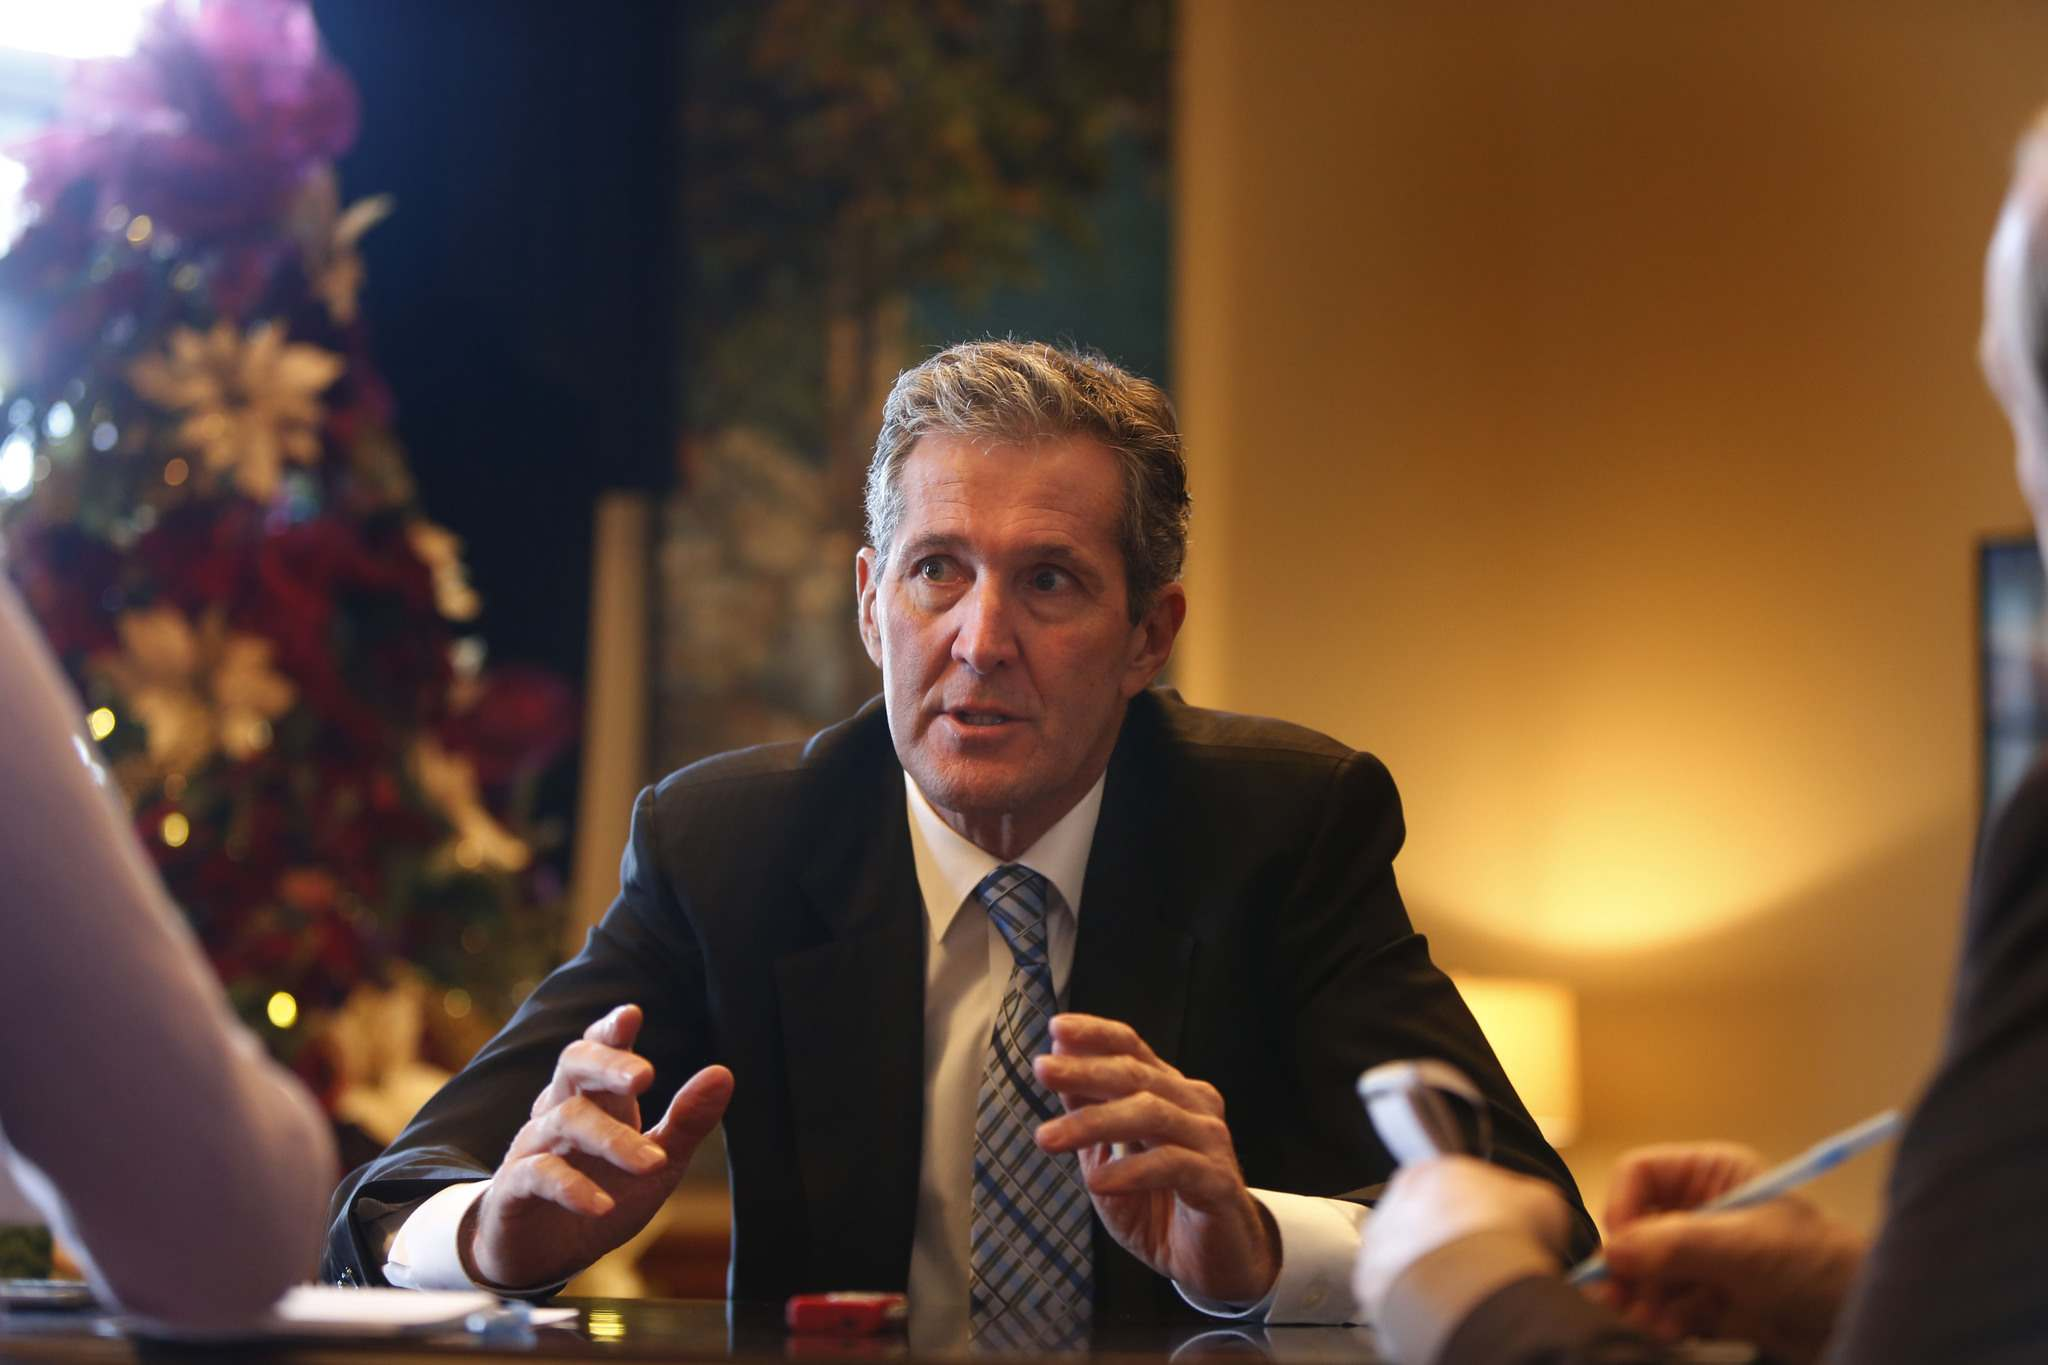 WAYNE GLOWACKI / WINNIPEG FREE PRESS</p><p>Premier Brian Pallister in his office for a year-end interview with the Free Press.</p>